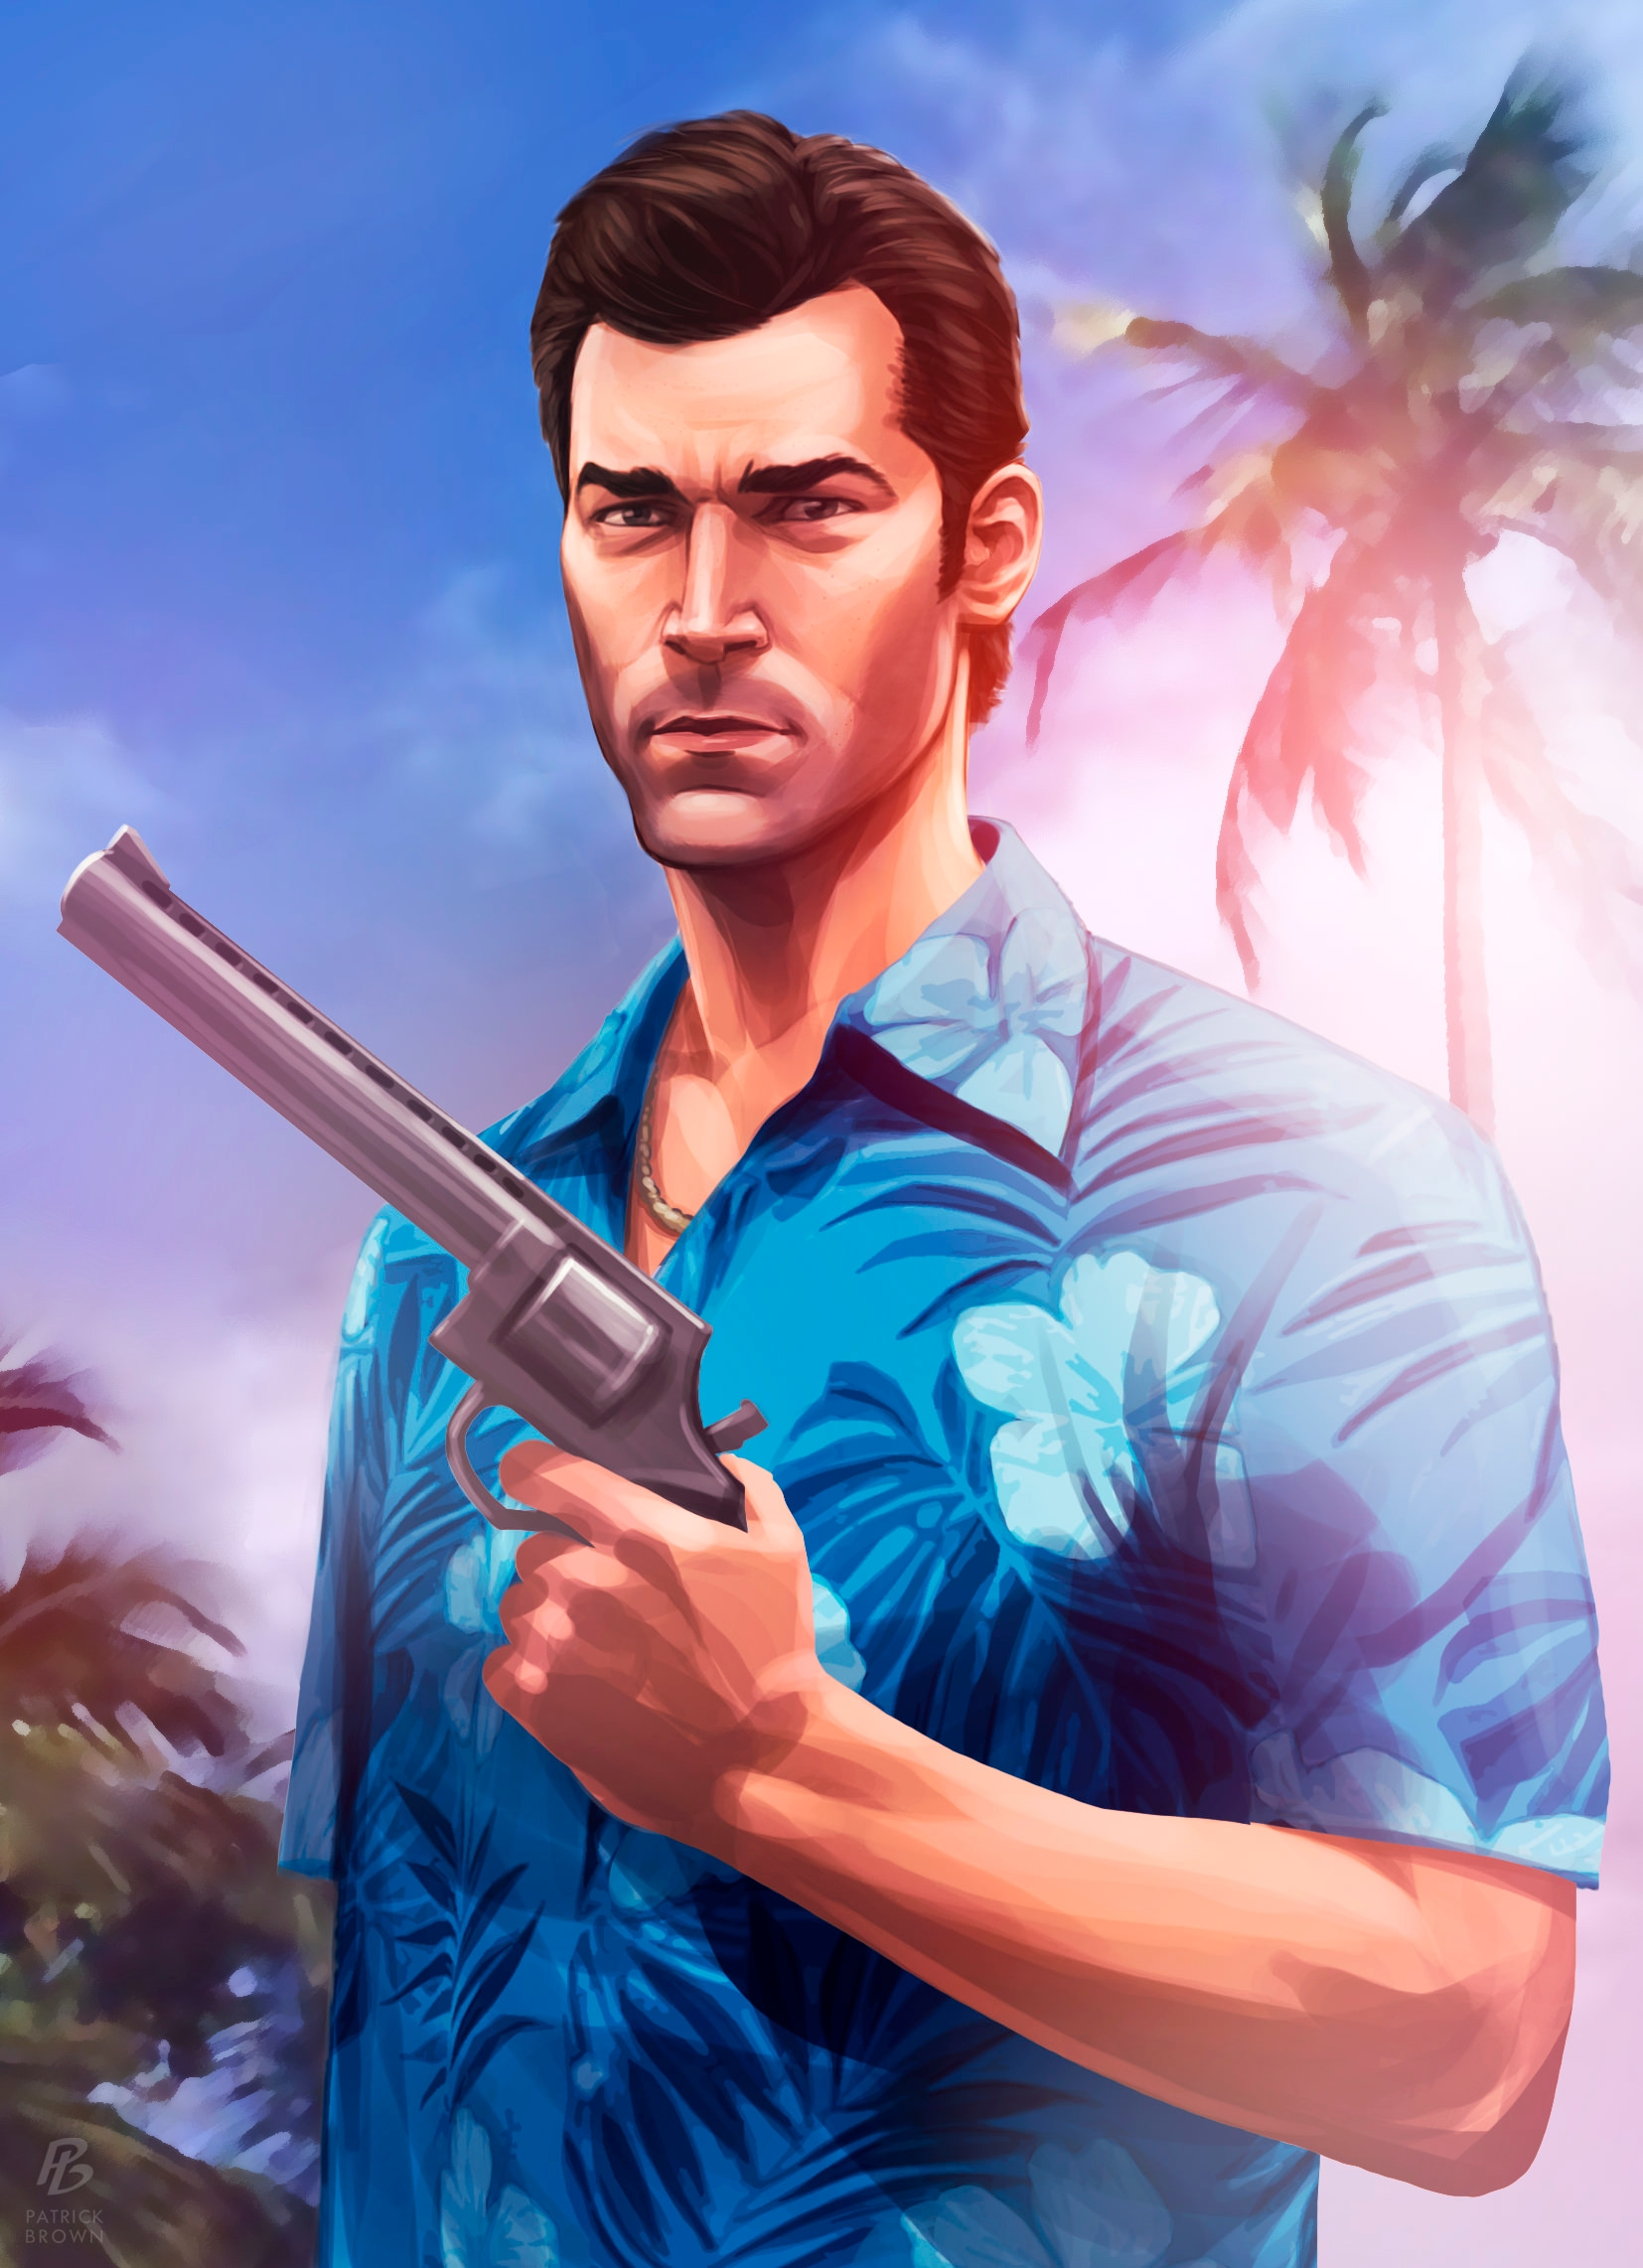 tommy_vercetti_by_patrickbrown-d4vyku3